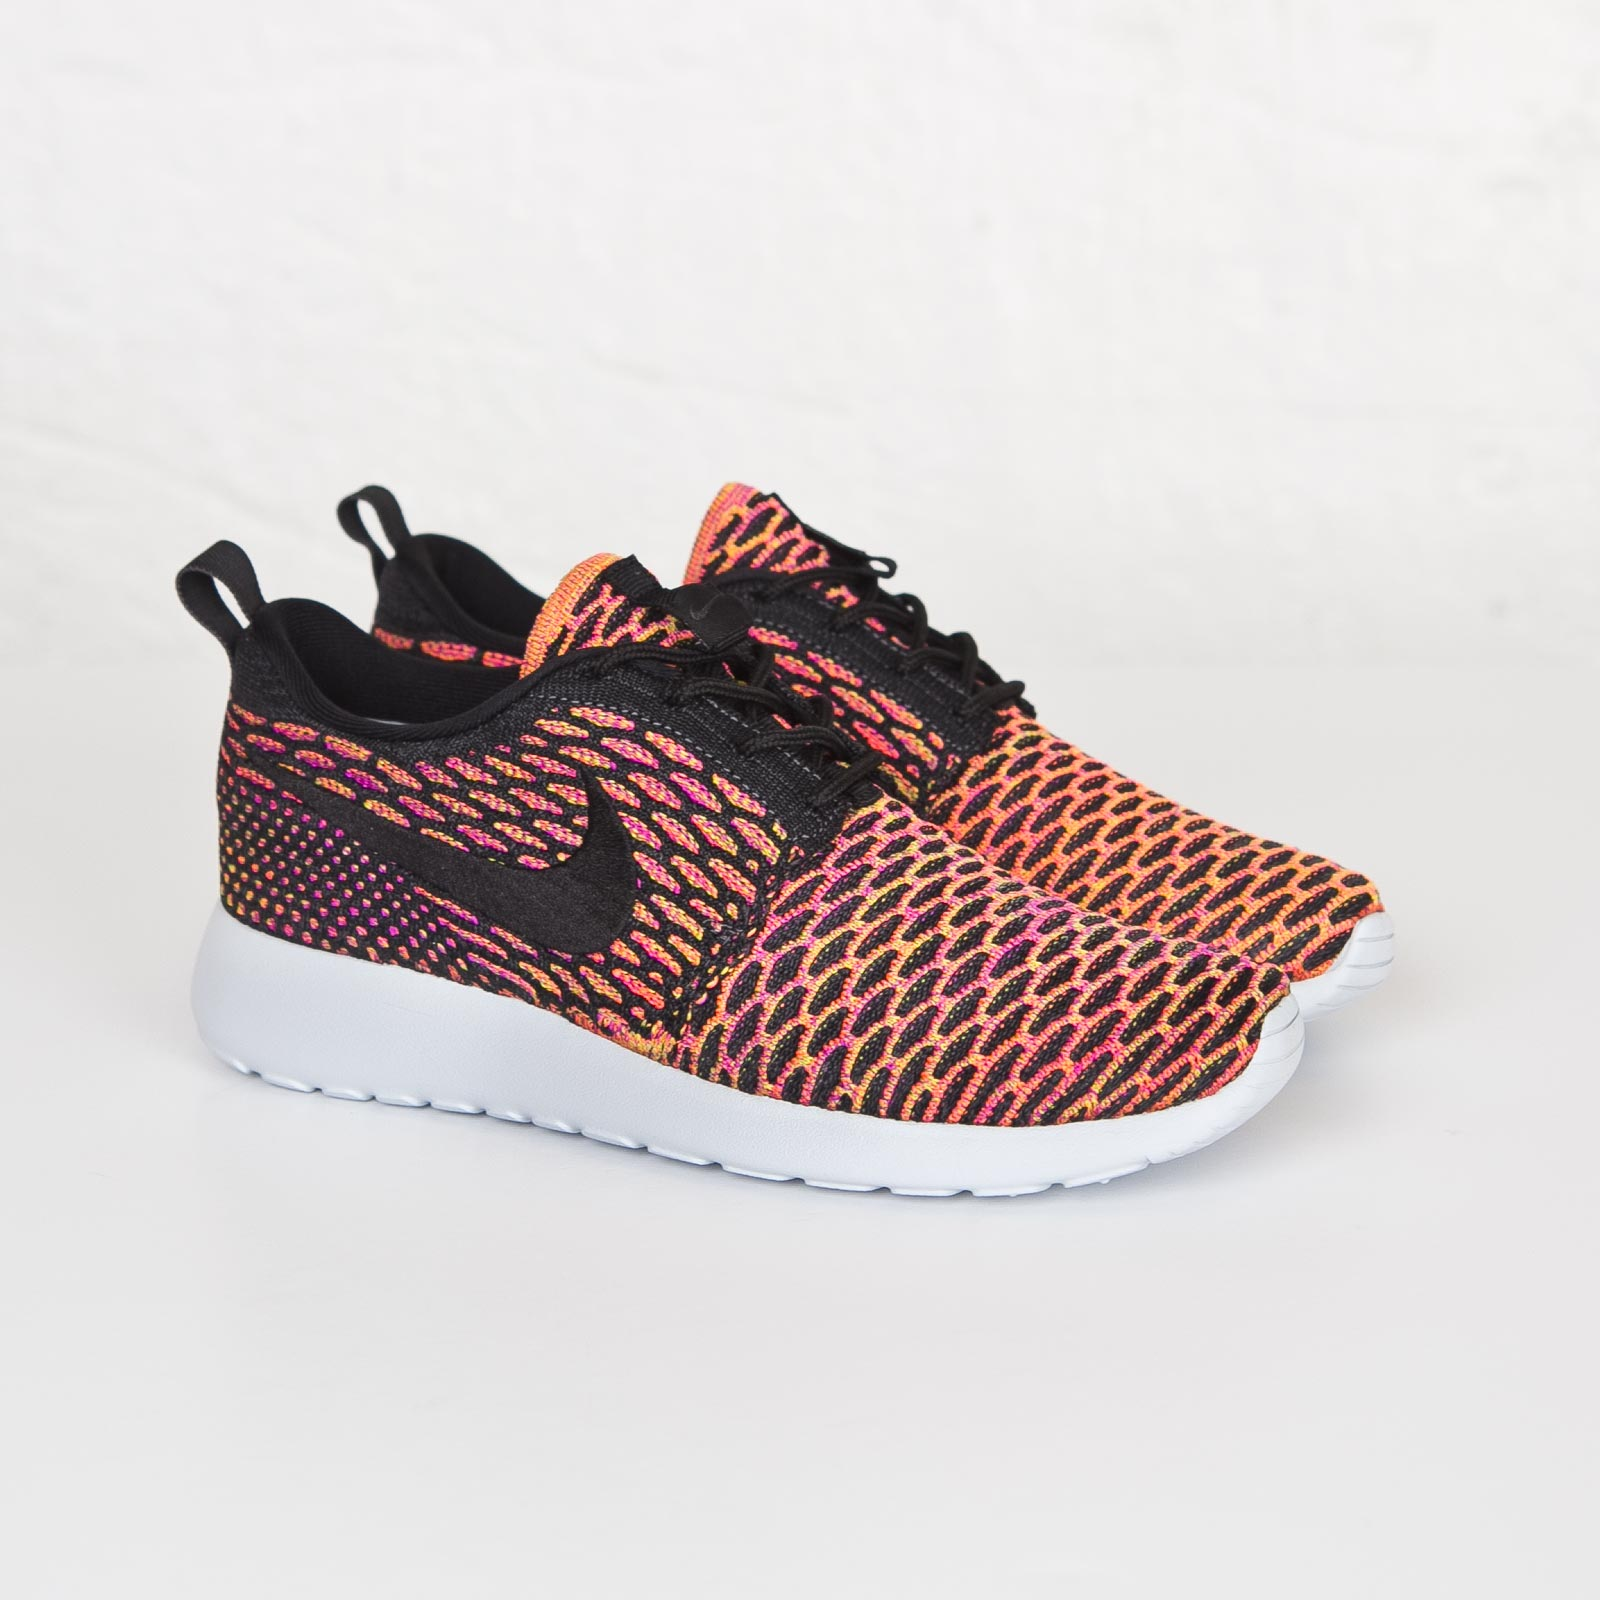 100% authentic df064 8b2b6 Nike Wmns Roshe One Flyknit